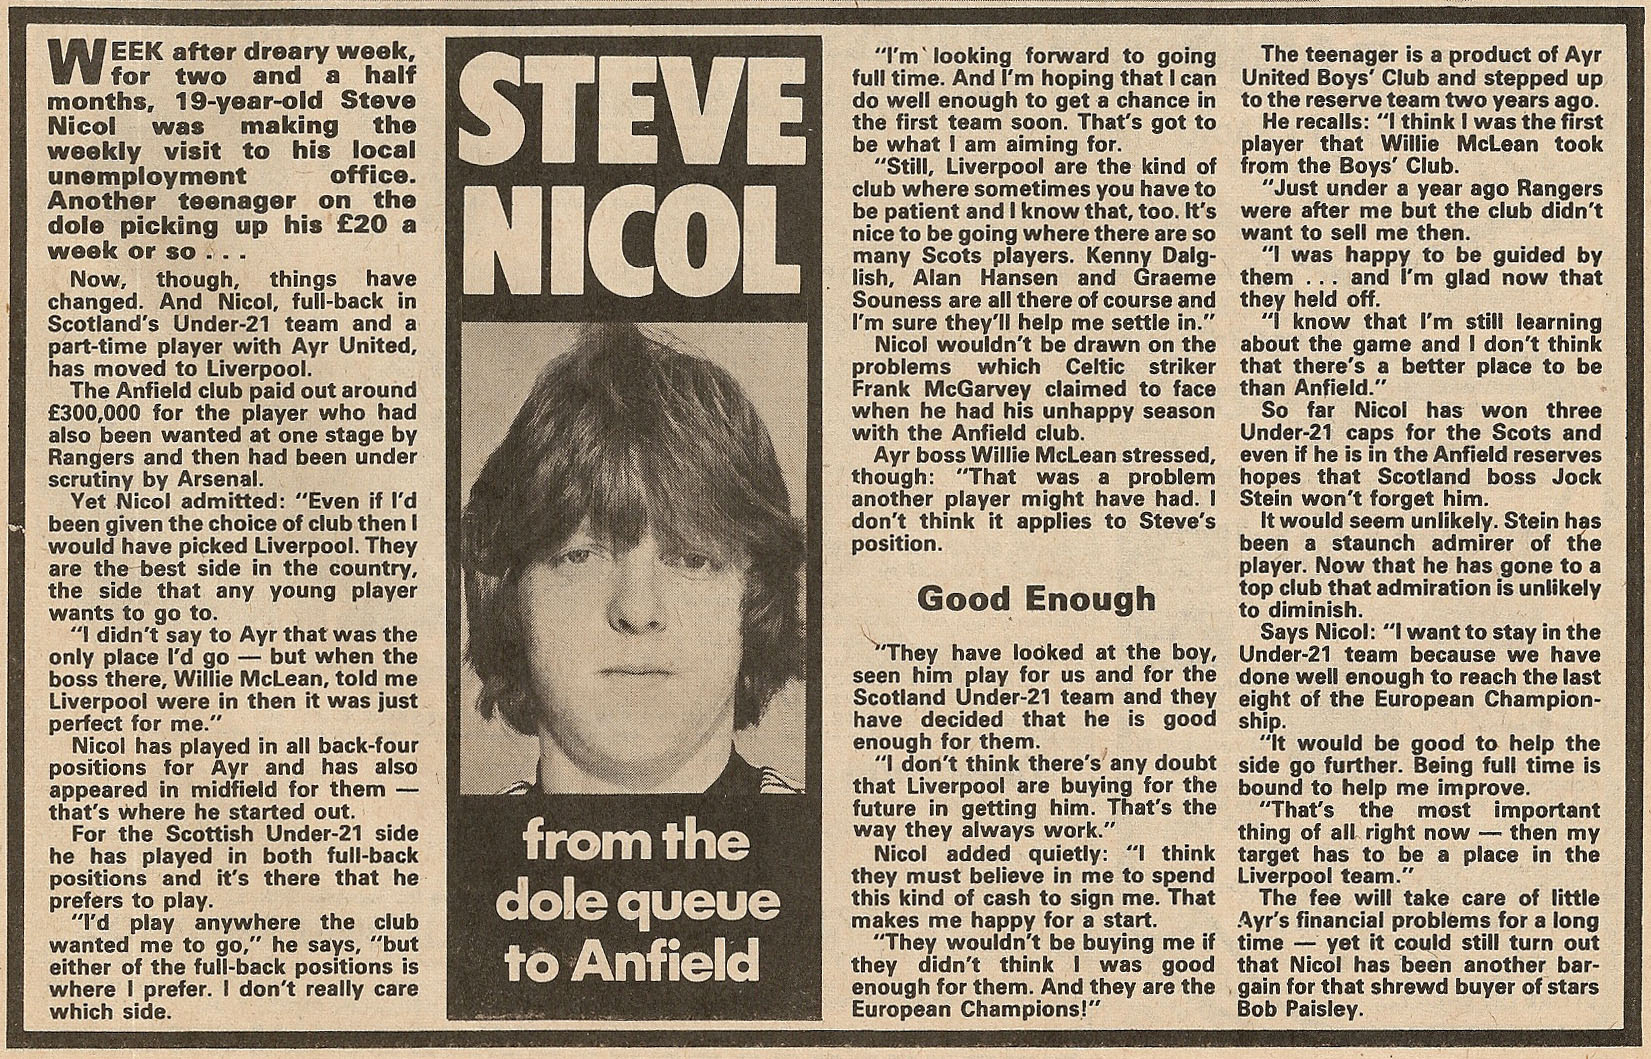 From the dole queue to Anfield - 28 November 1981